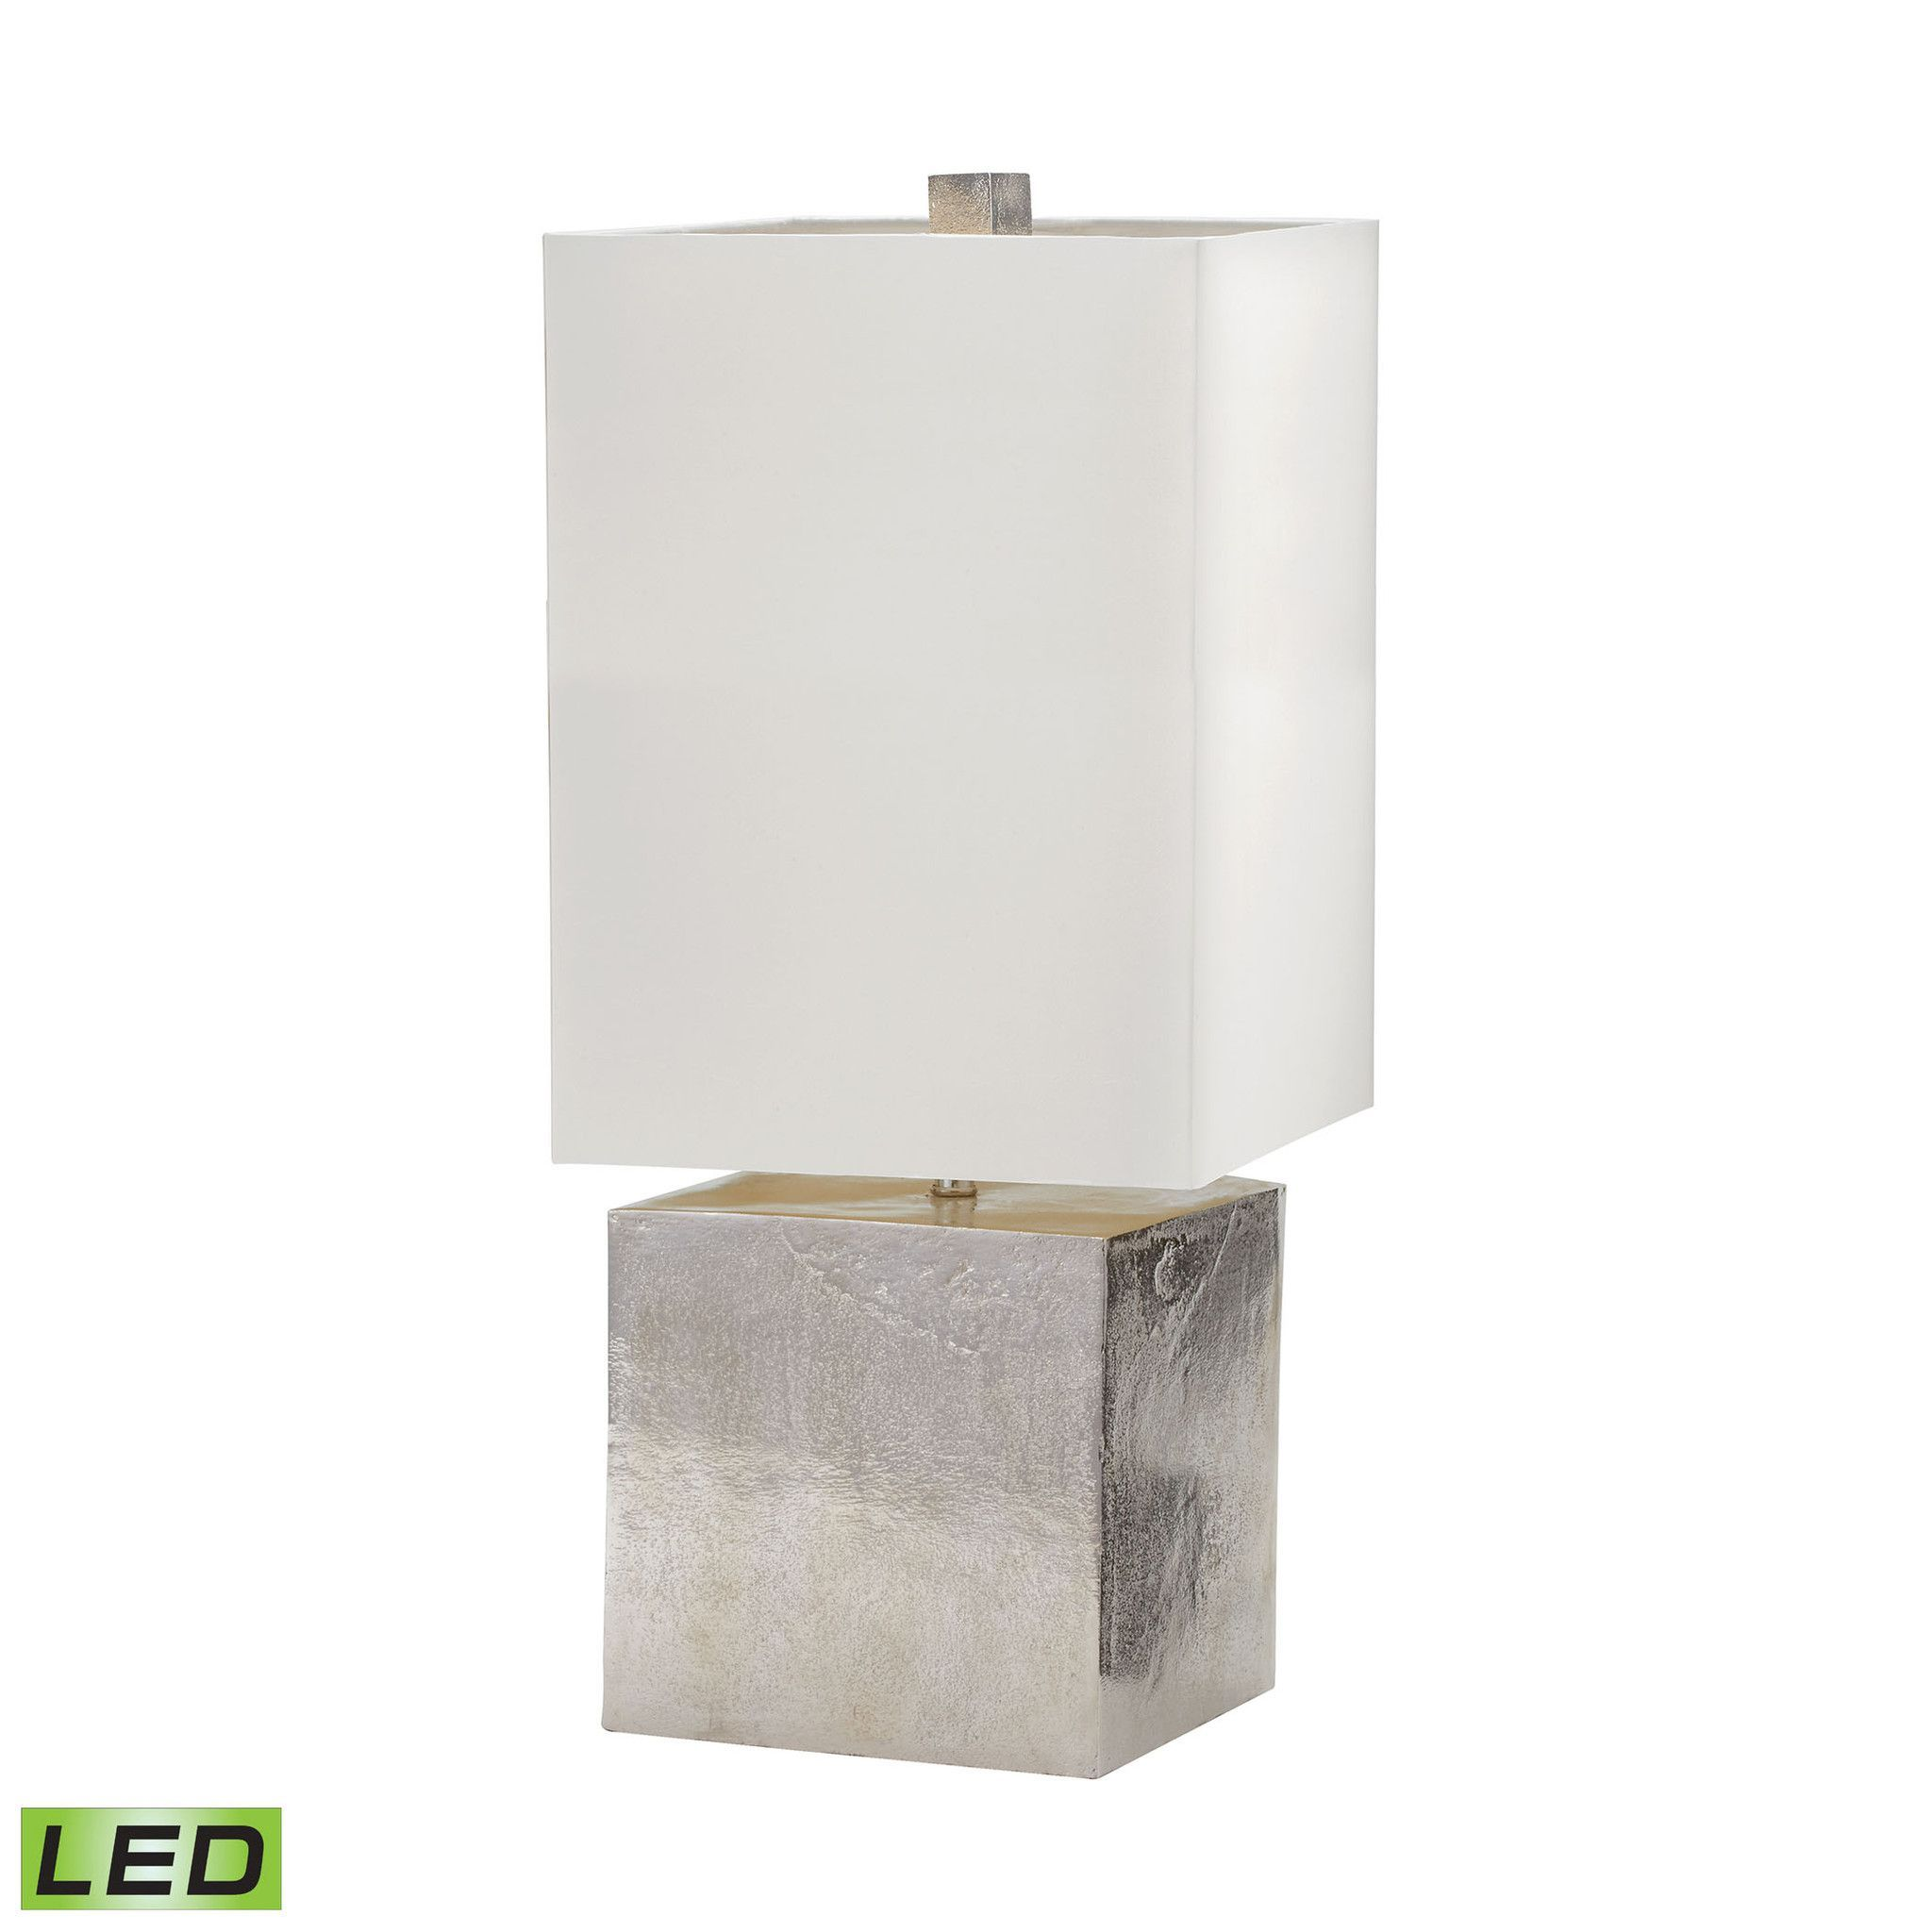 Cement Cube LED Table Lamp in Nickel Nickel